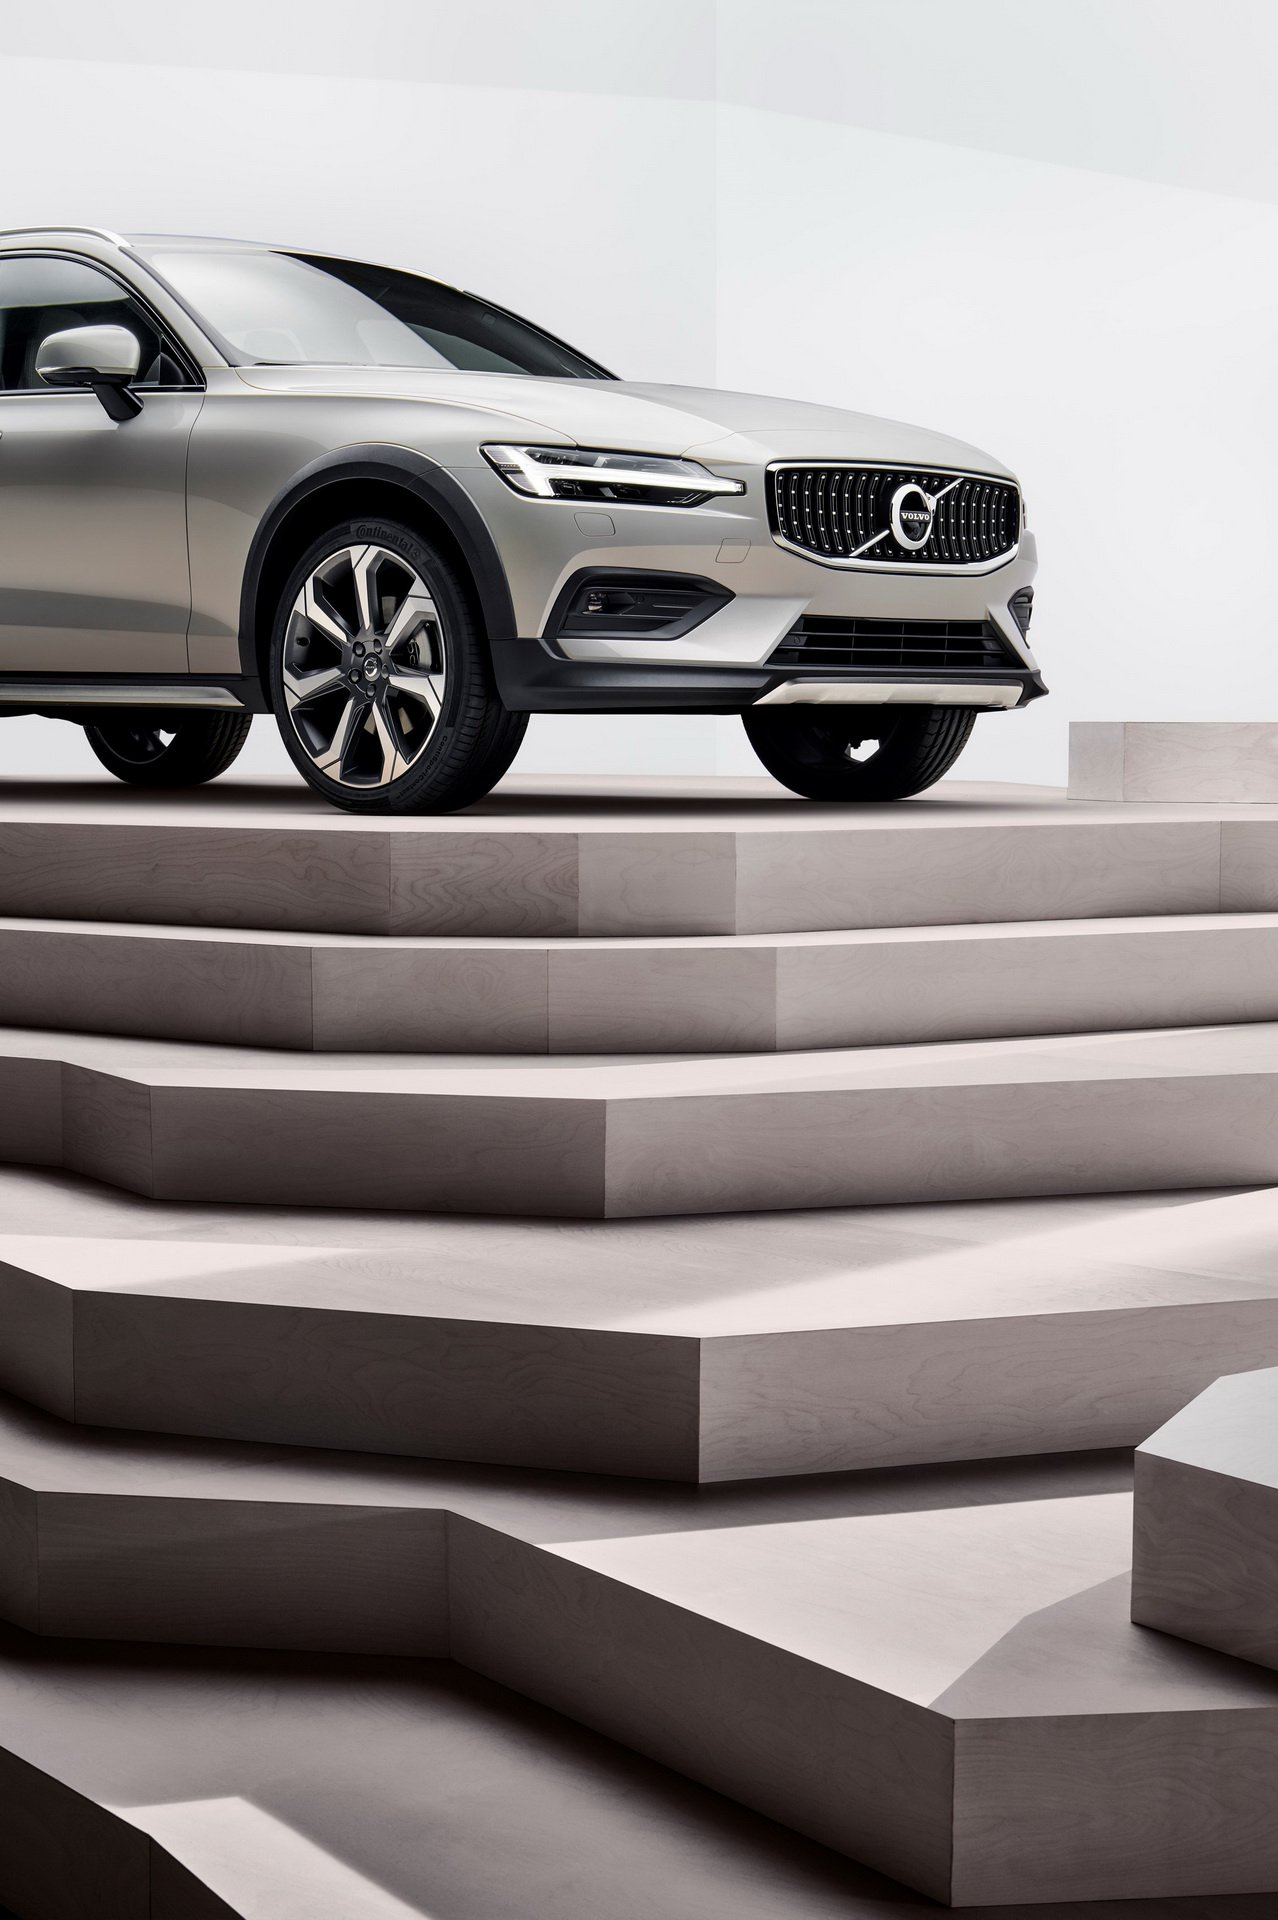 2019 Volvo V60 Cross Country Is Just Barely Rugged, But Still Very Cool - autoevolution